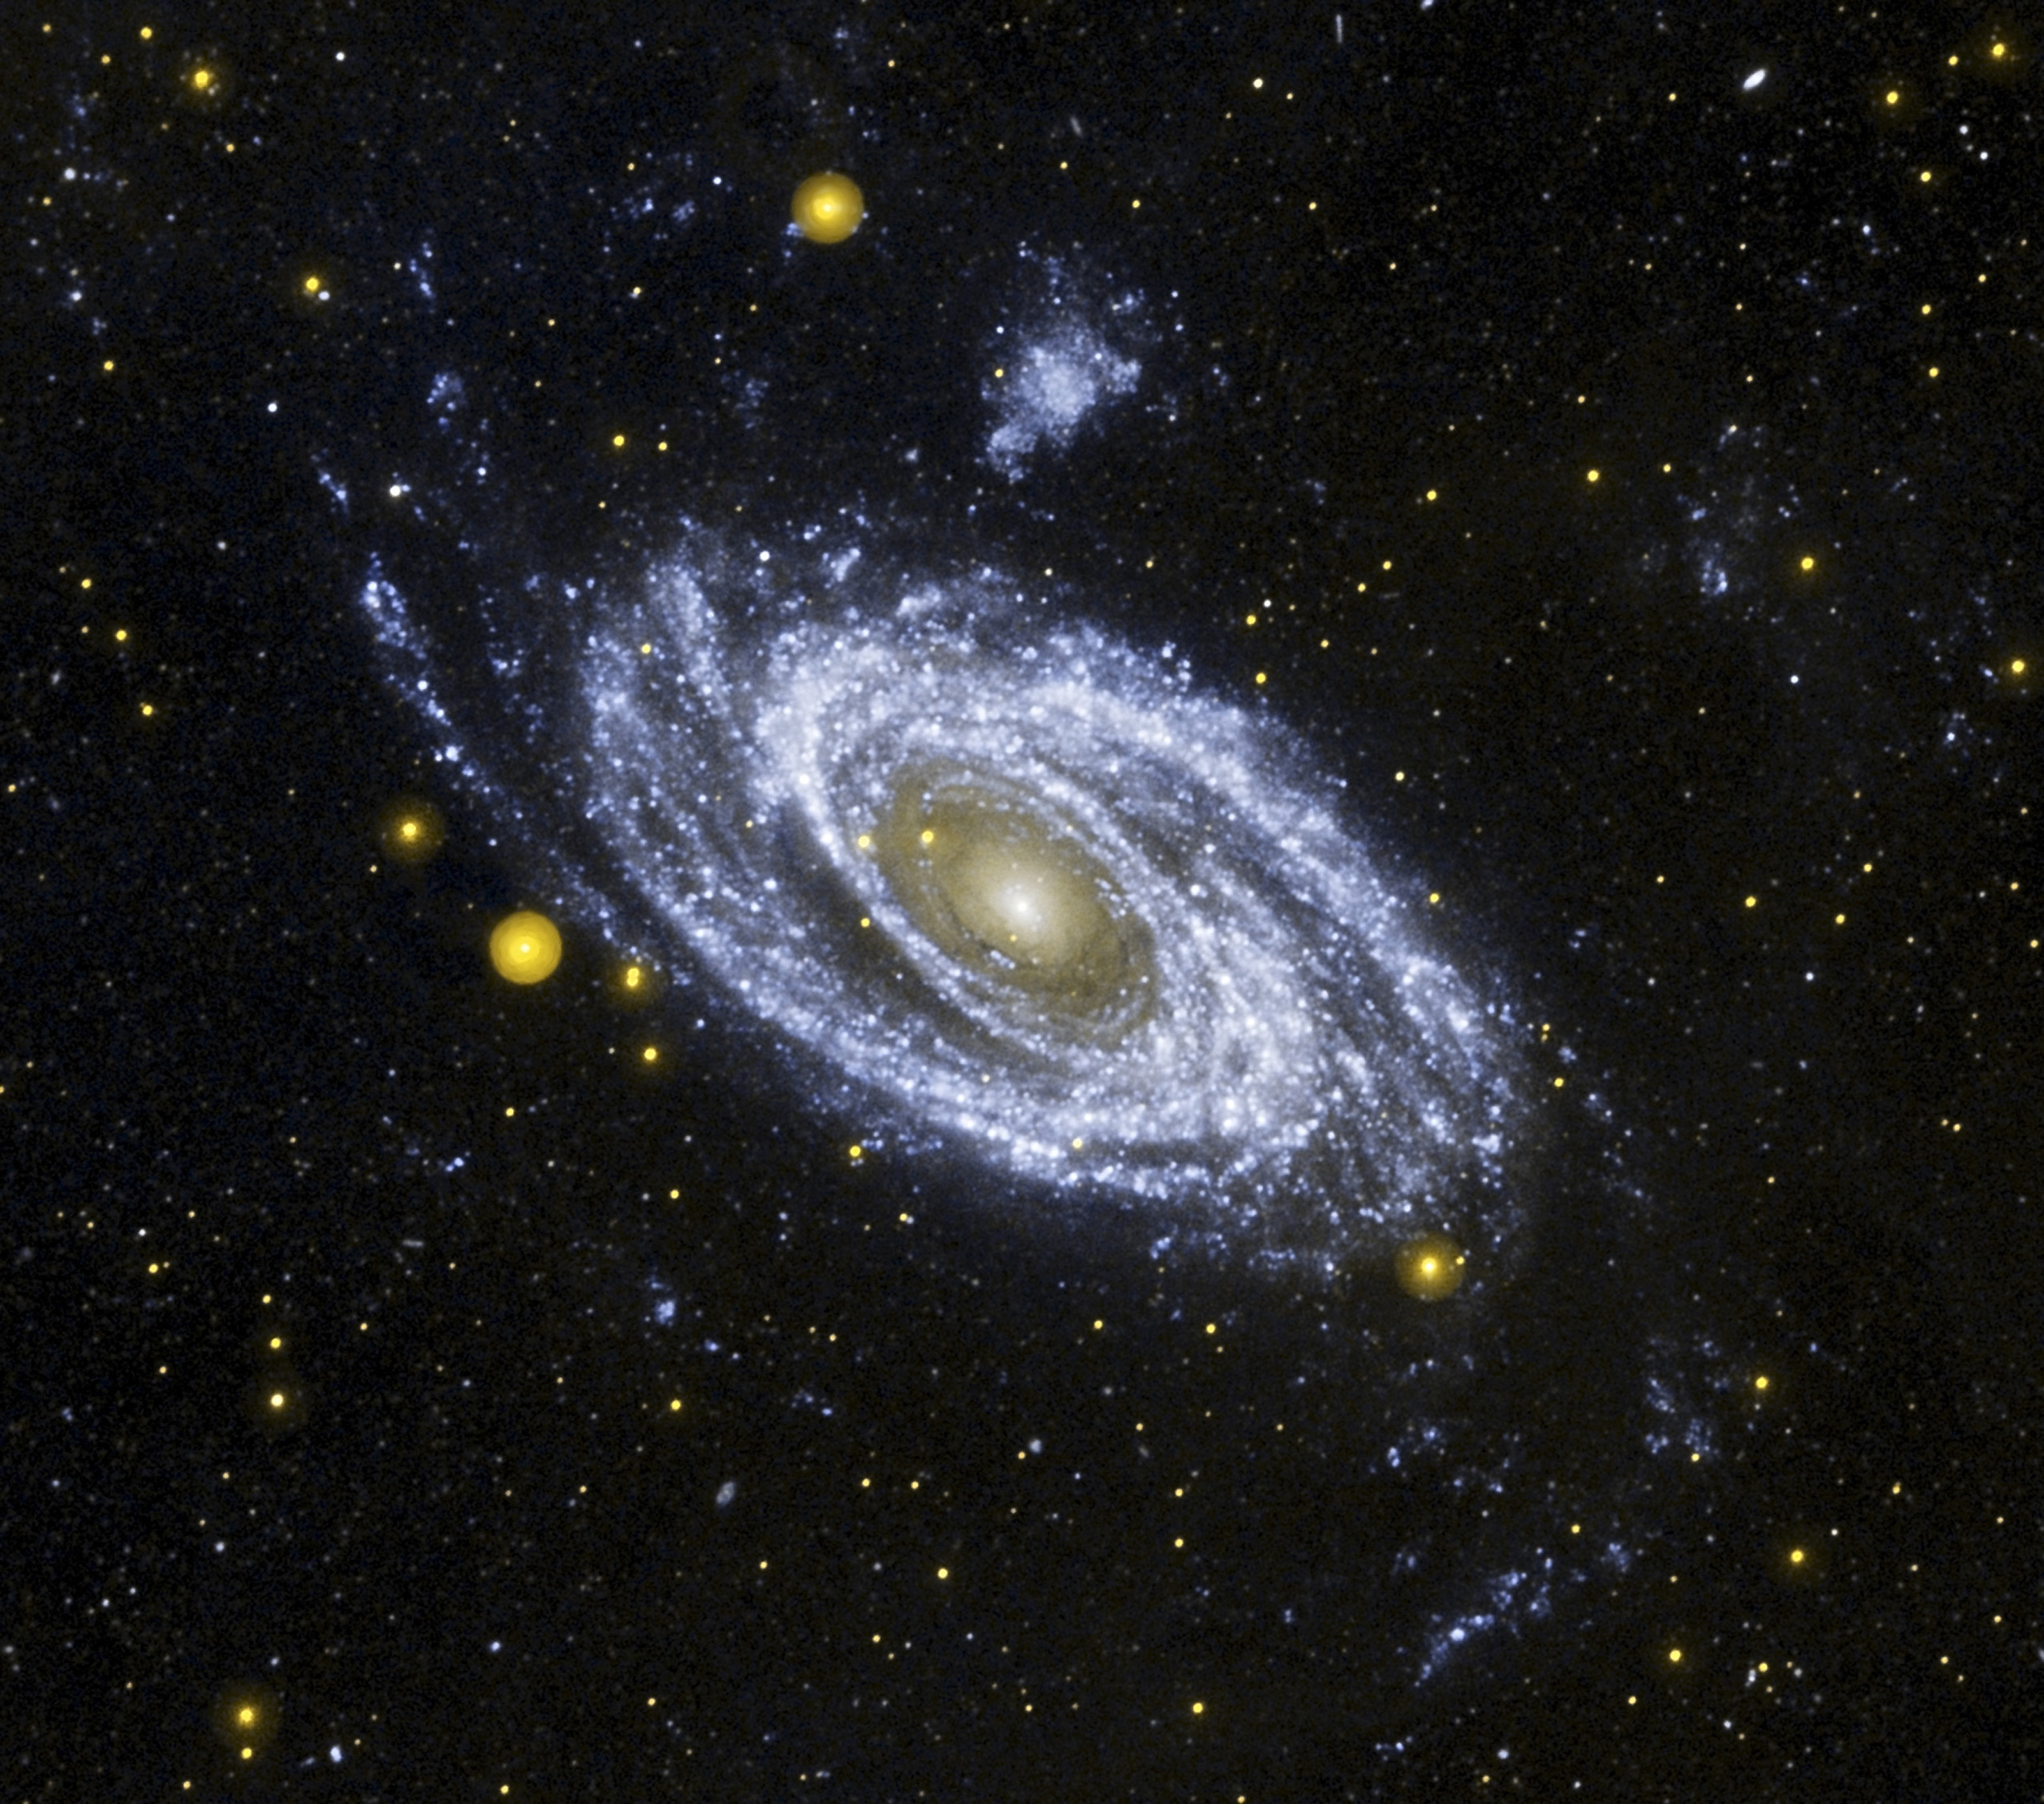 Astronomers used the Galaxy Evolution Explorer (GALEX) telescope to take this deep image in ultraviolet light of the sprawling spiral galaxy M81, hoping to learn where it kept its hot stars